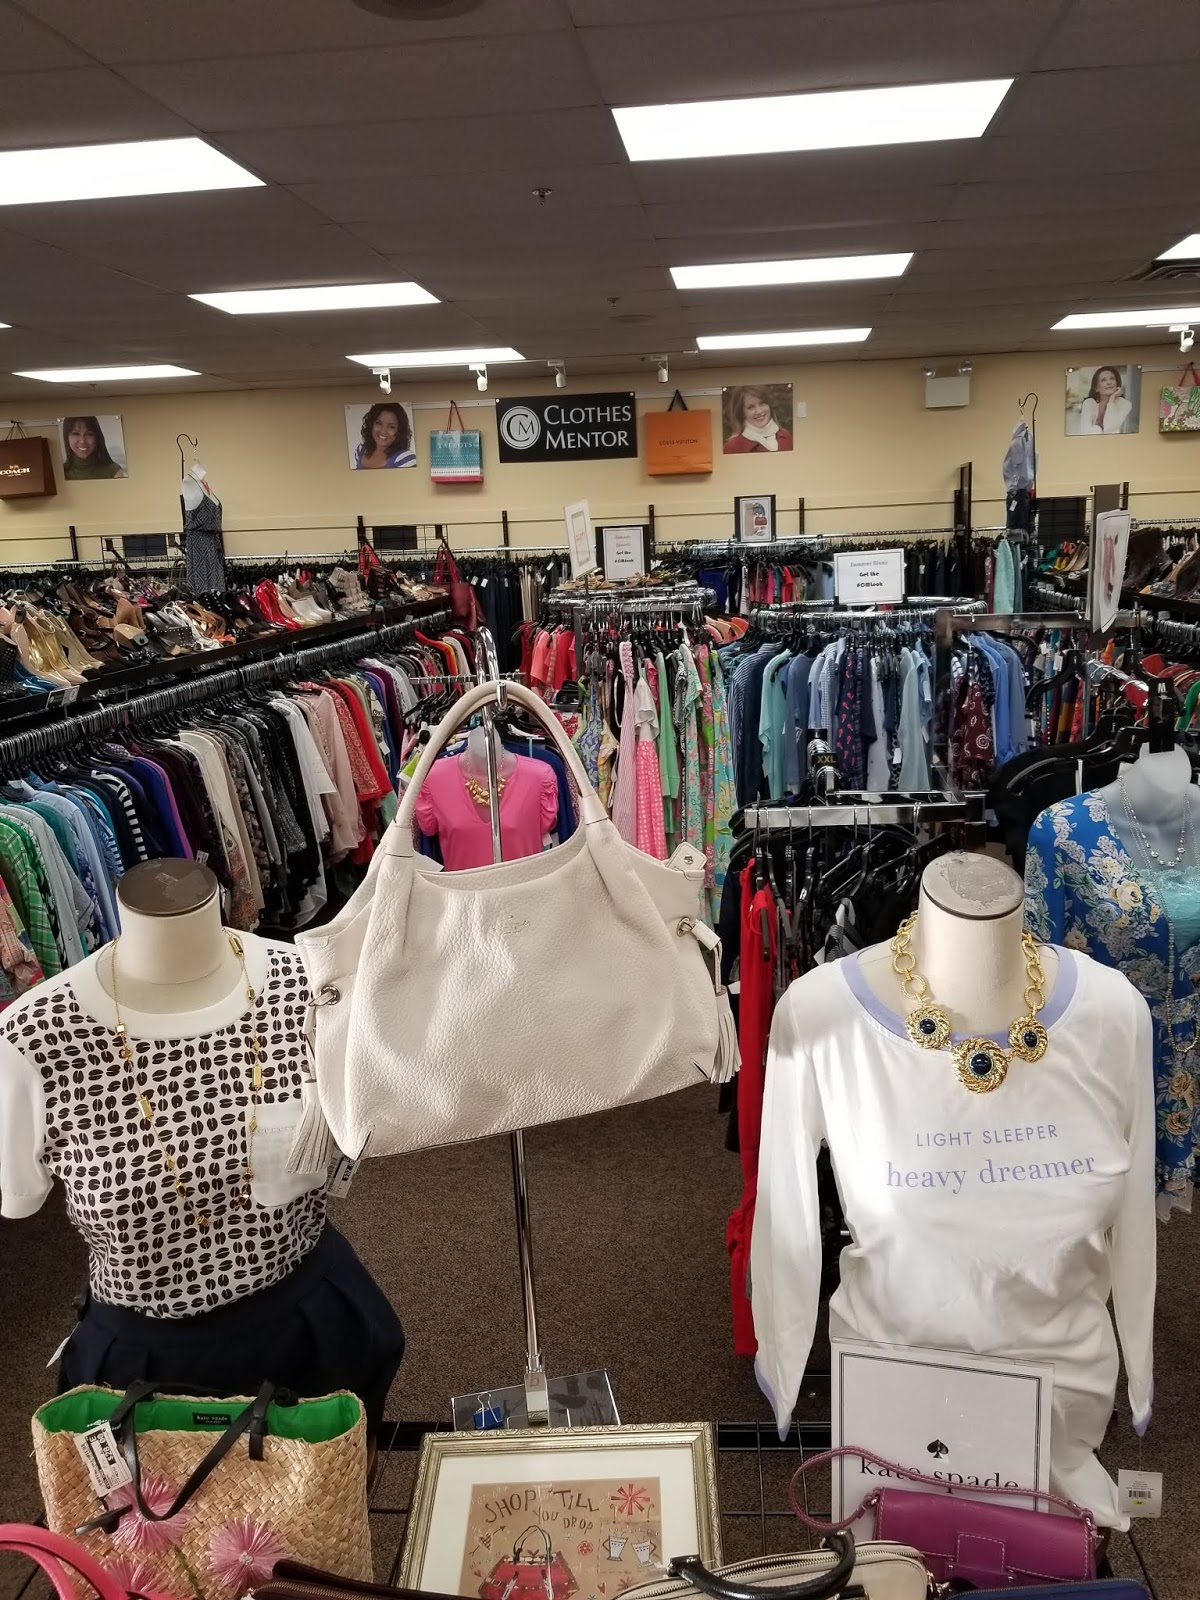 87ce8f730e1 Clothes Mentor is a resale shop where you can find designer brands up to  70% off the retail price. They carry everything from clothing ...